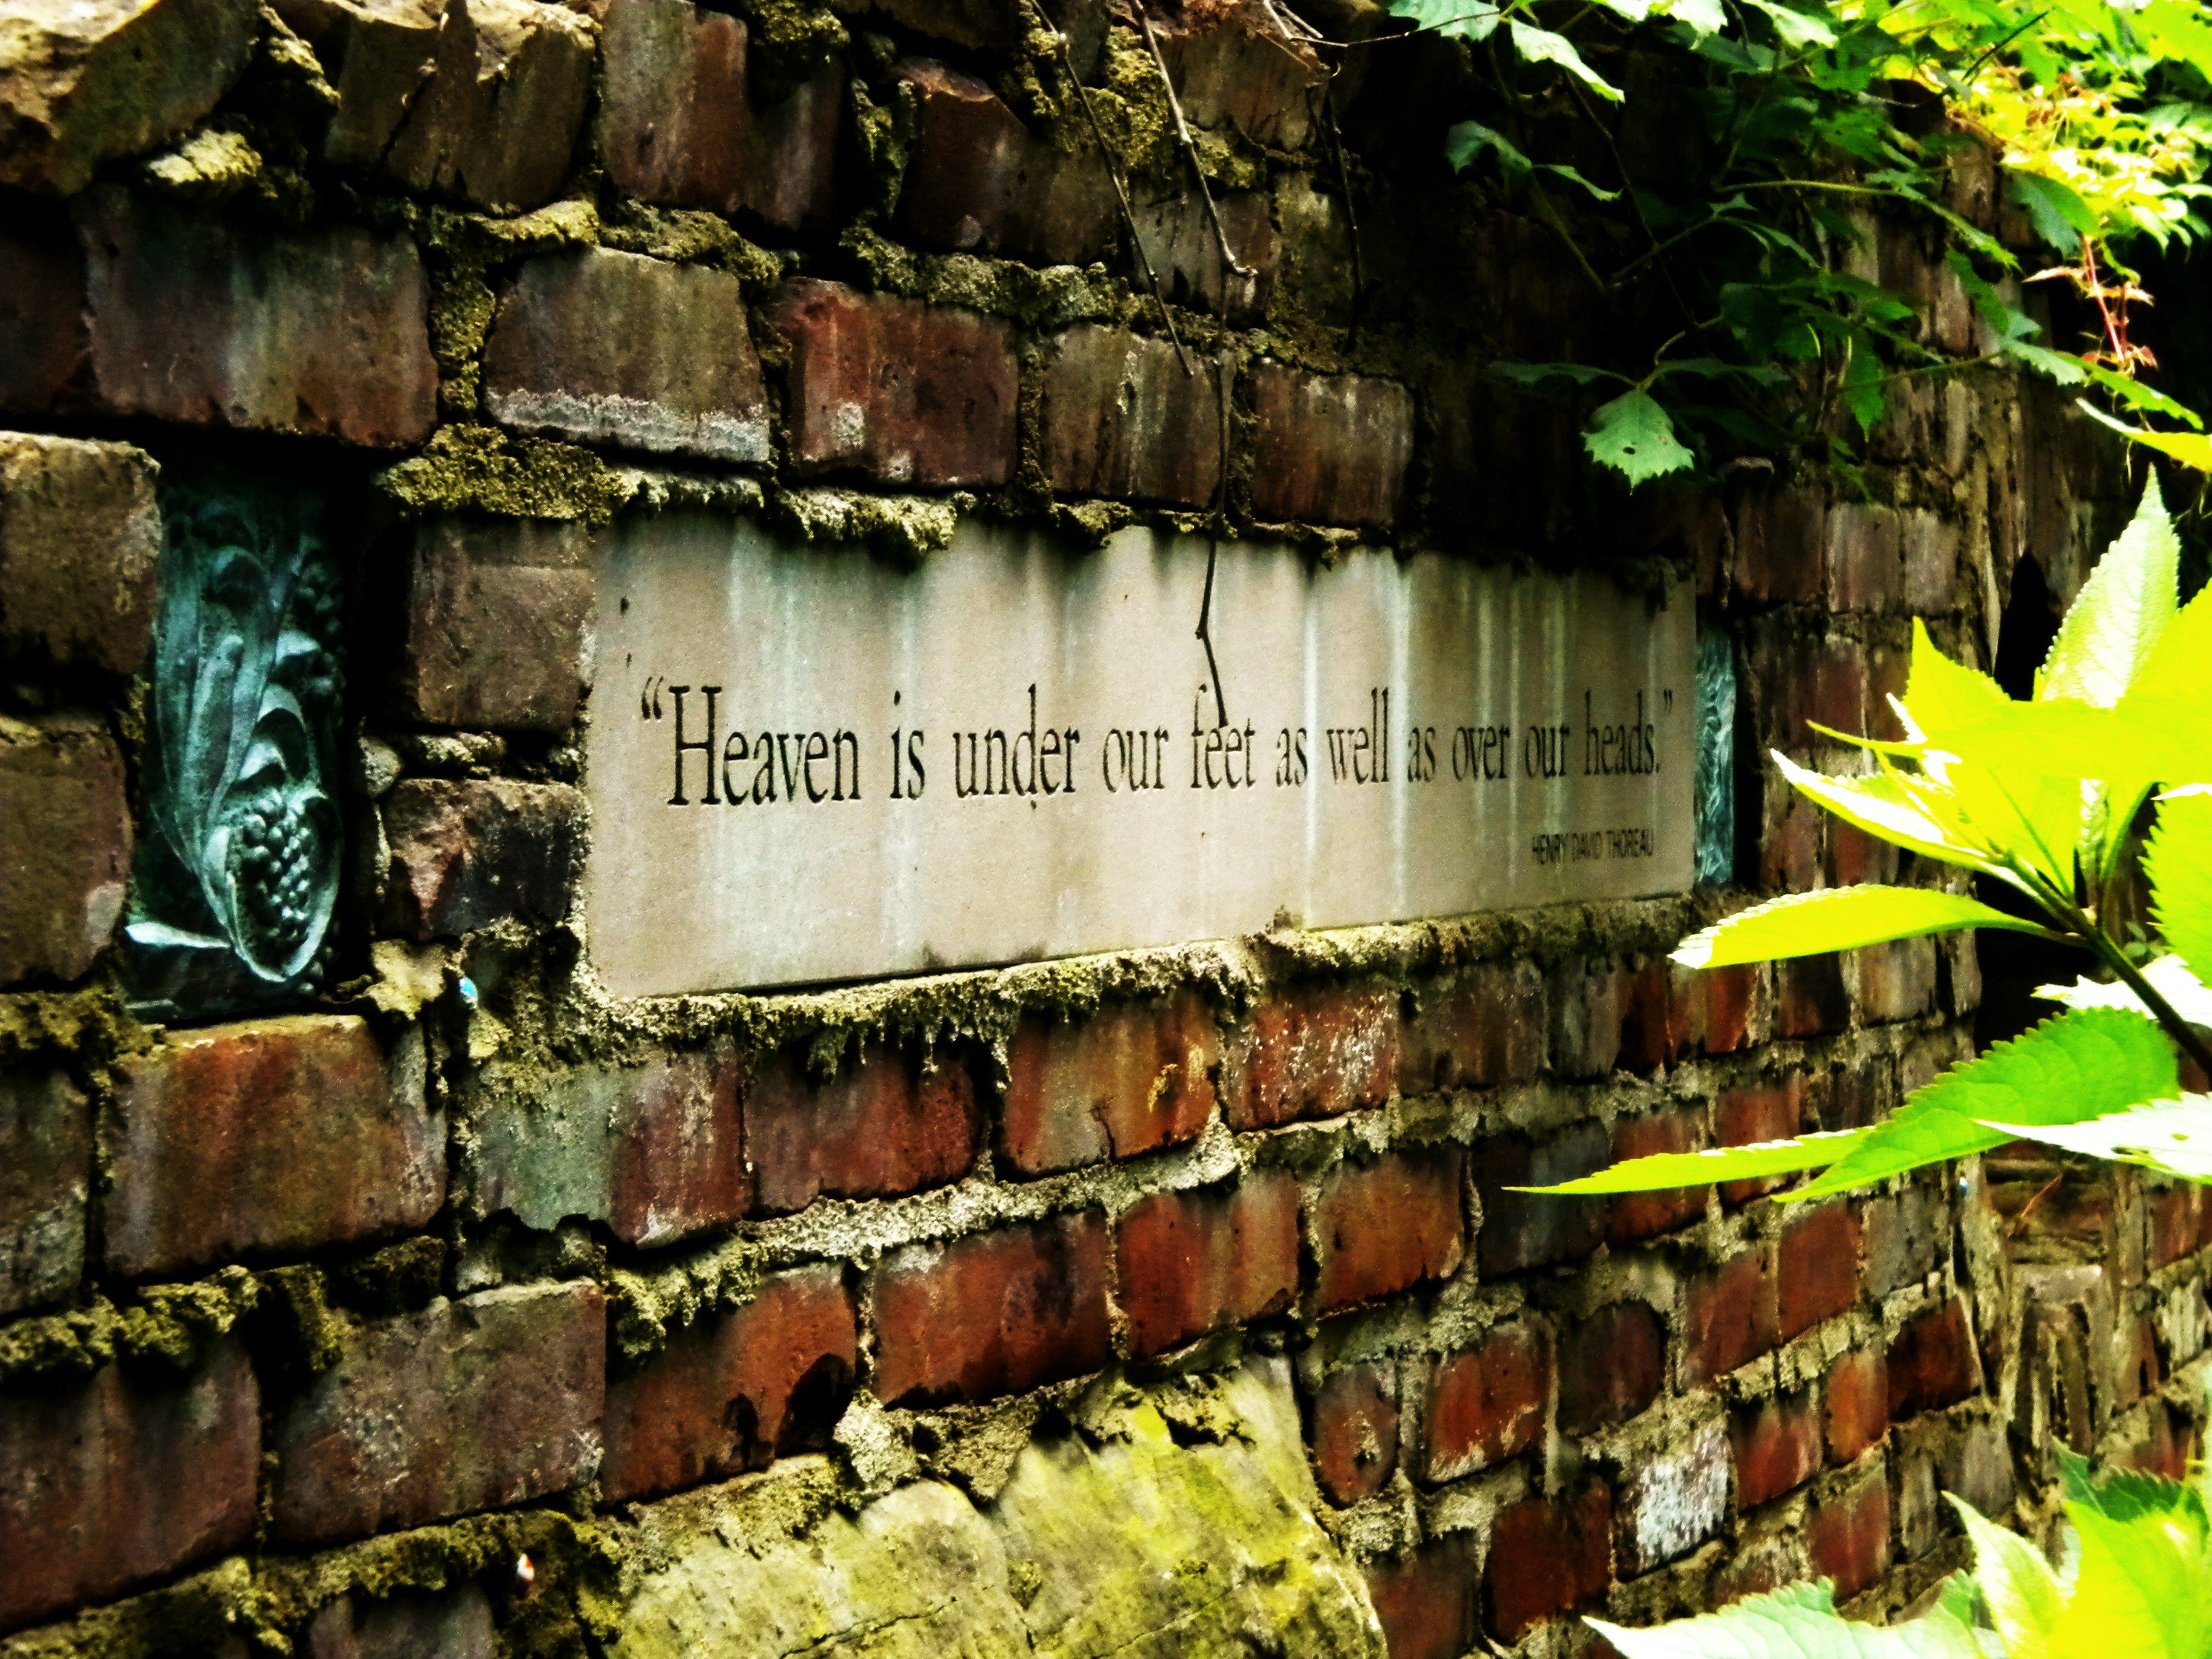 garden quote More gardening quotes to inspire: http://www.tomatodirt ...